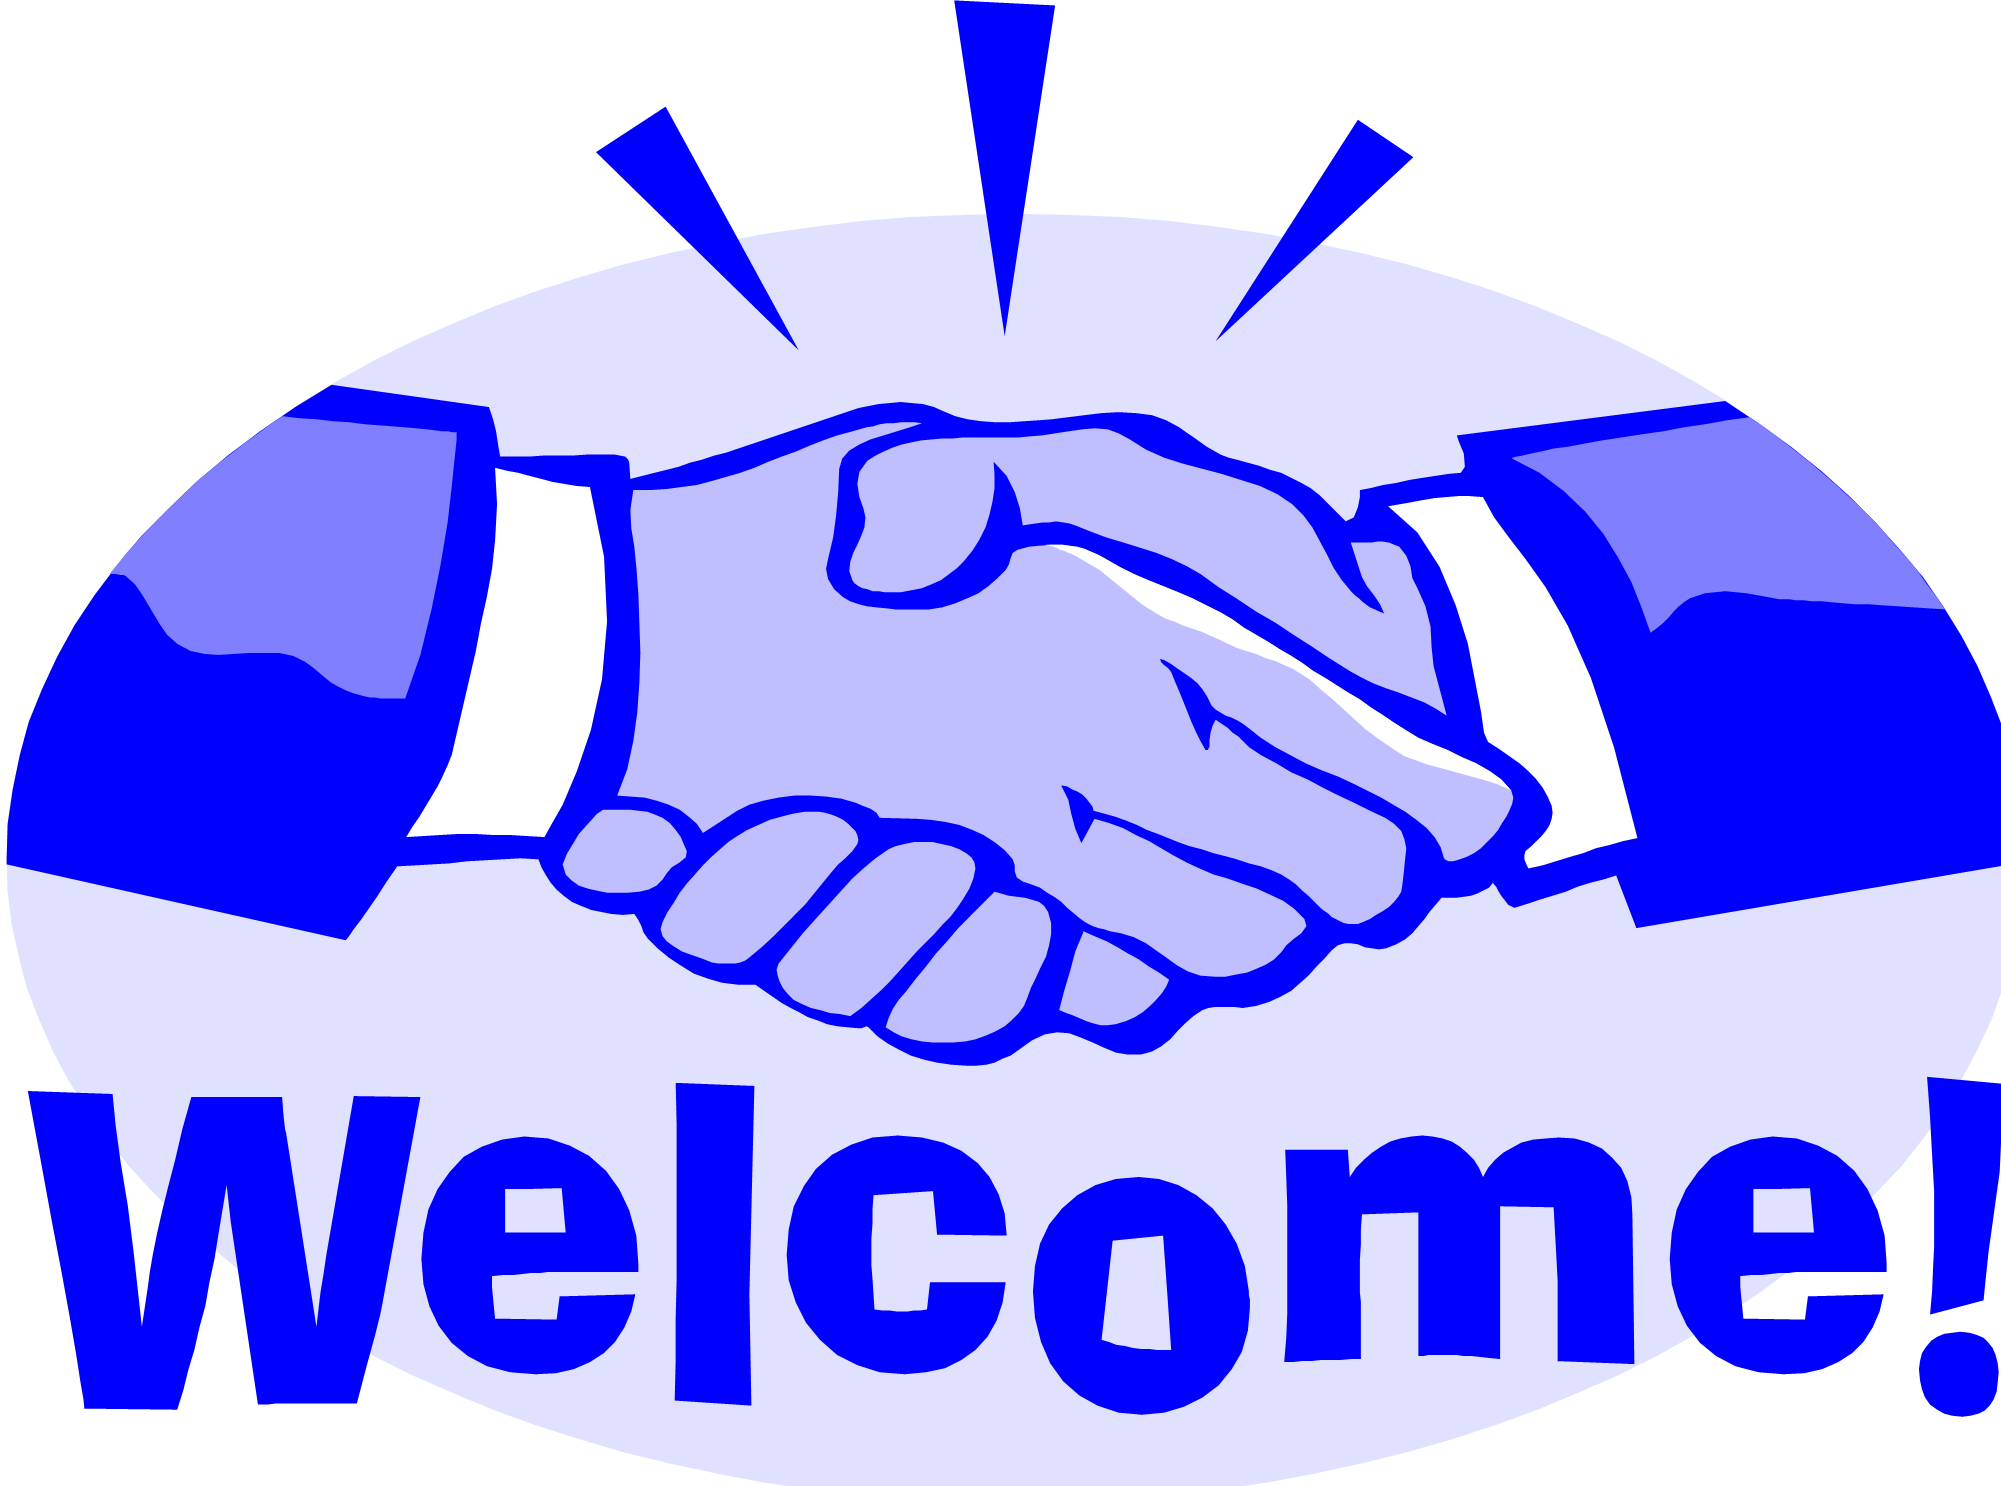 Handshake clipart day. Welcome image share on